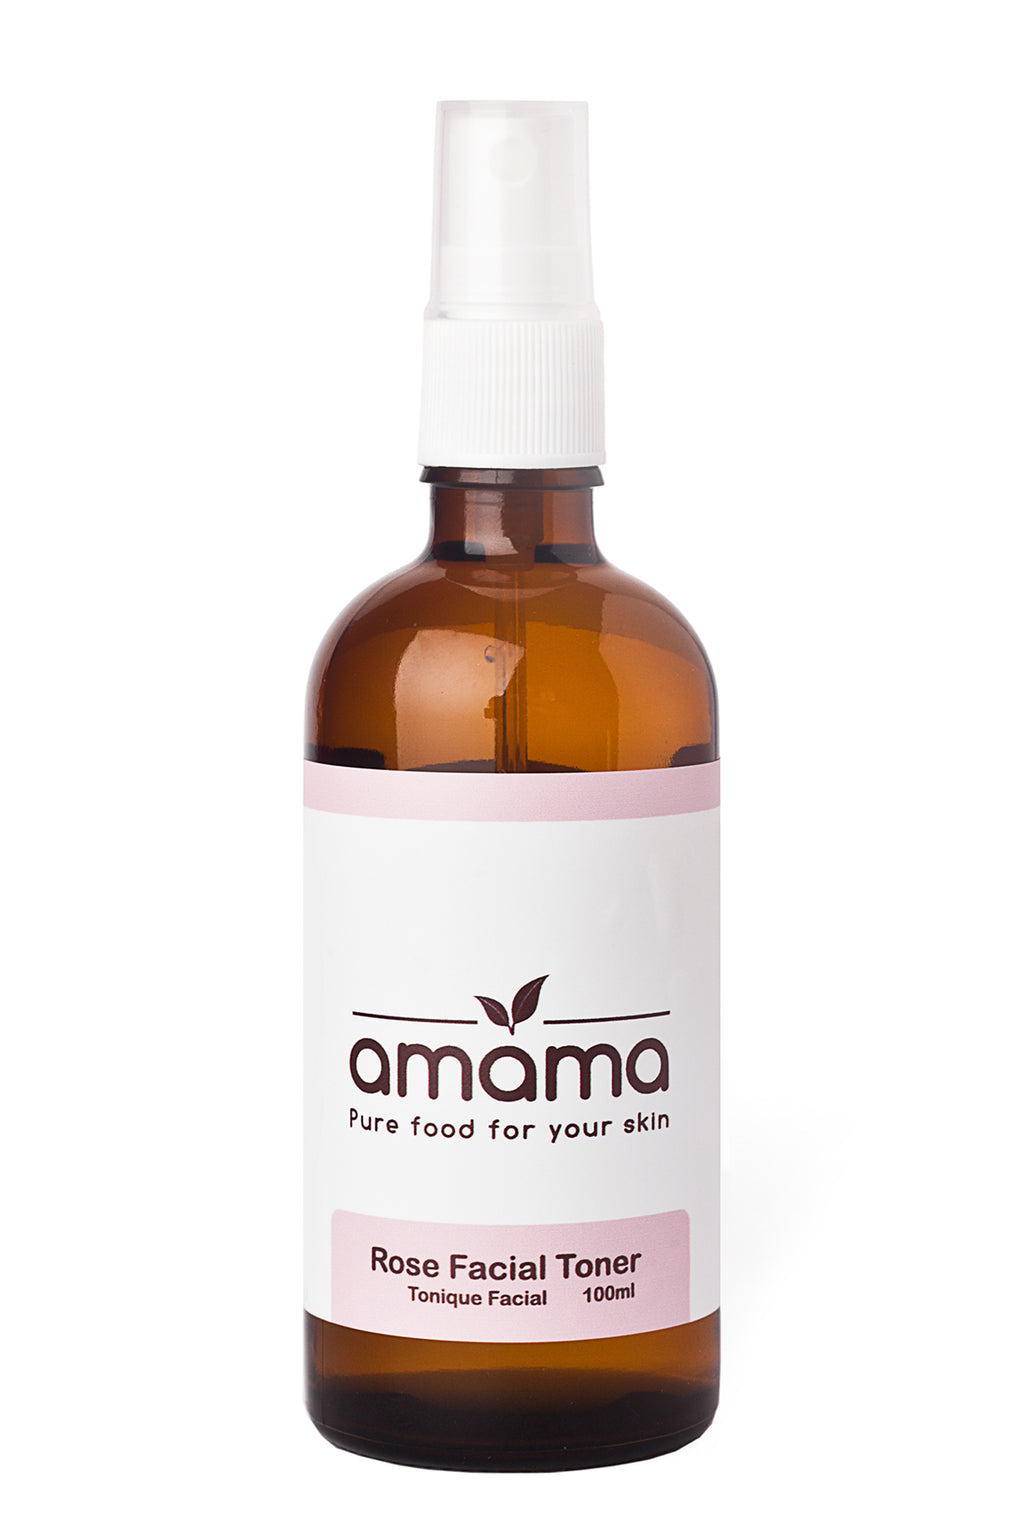 ROSE FACIAL TONER,  Amama by Margaret Norcott